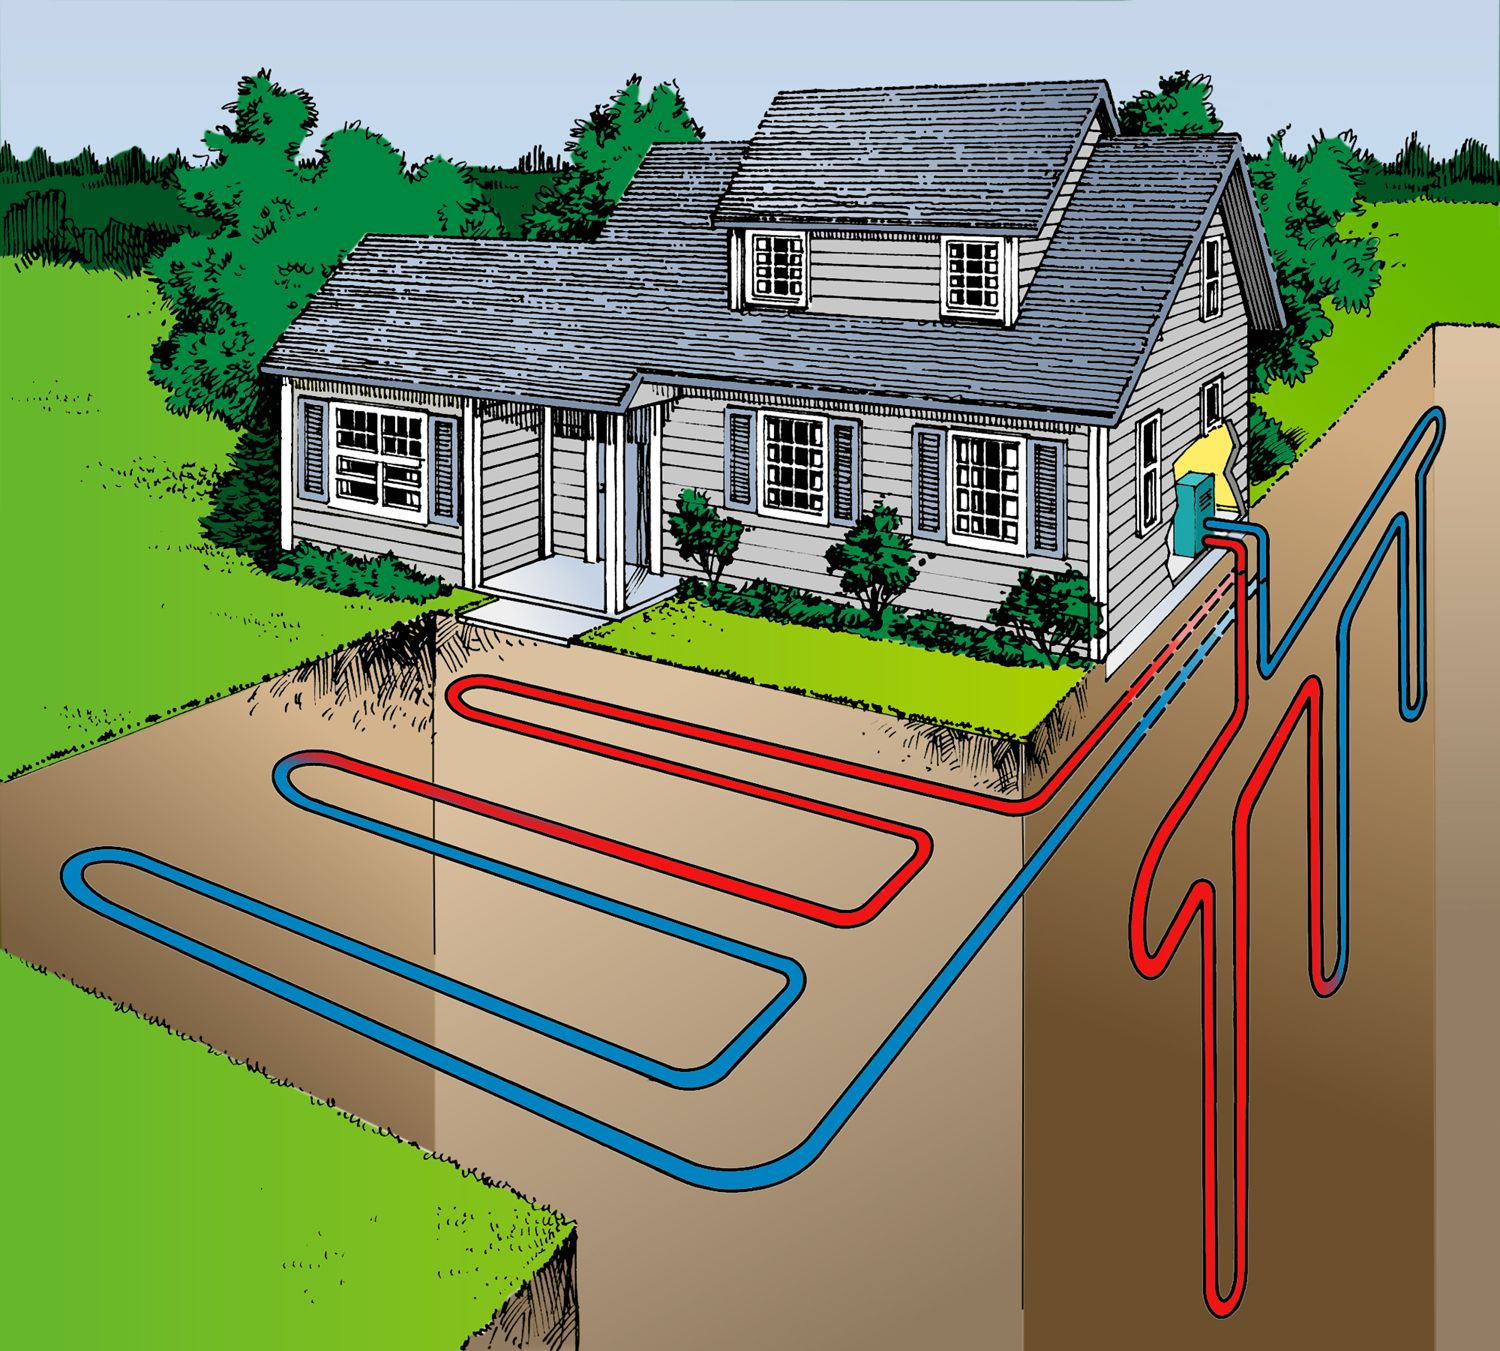 Geothermal Energy For Free Heat And Air Conditioning Geothermal Heat Pumps Geothermal Heating Geothermal Energy